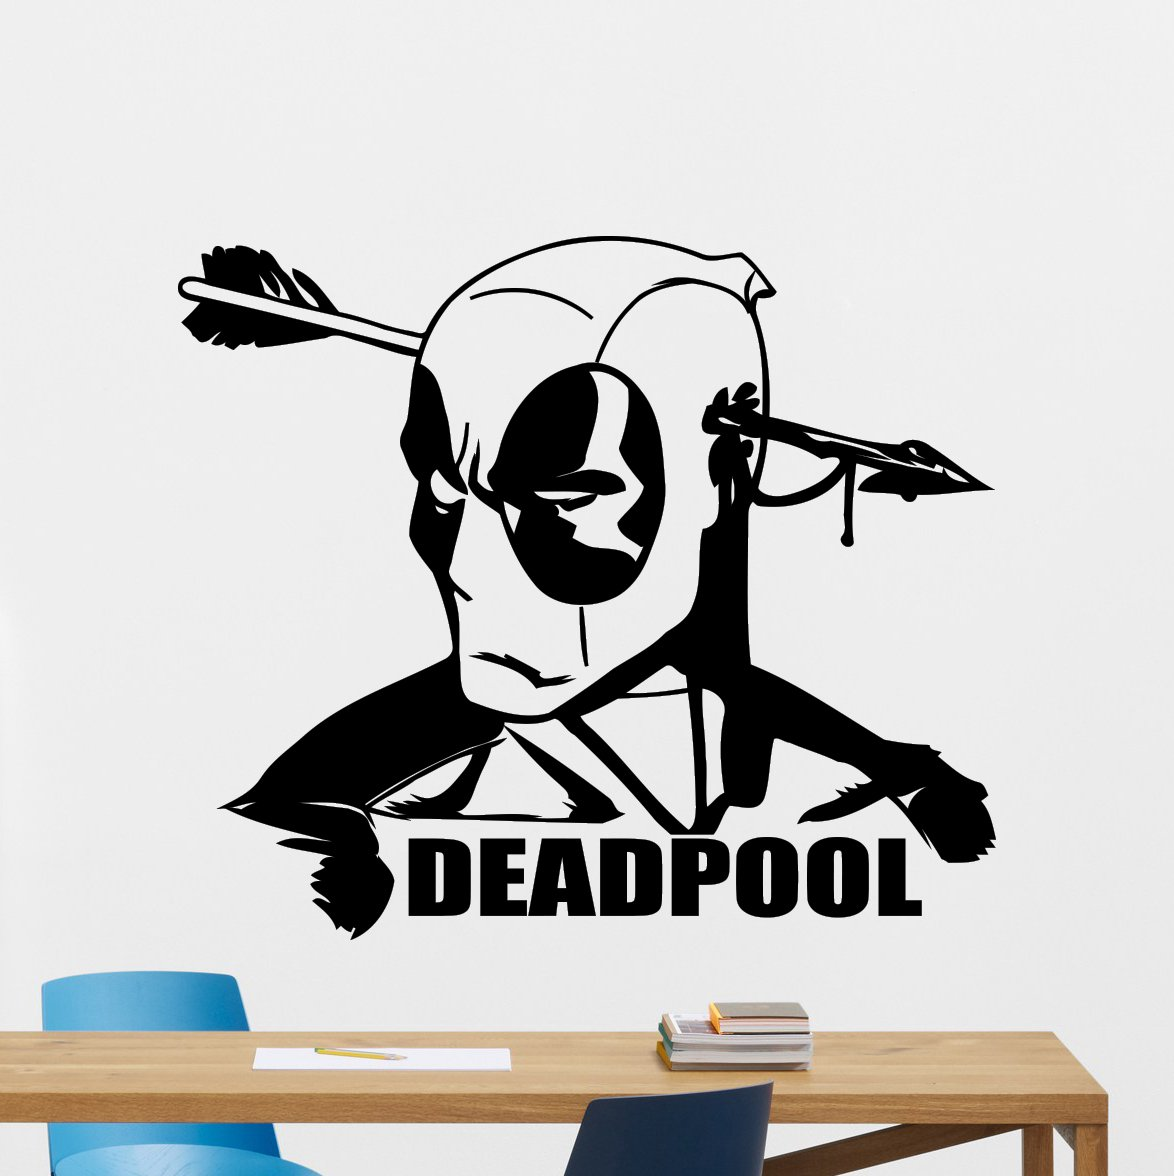 amazon com deadpool wall decal marvel comics superhero movie amazon com deadpool wall decal marvel comics superhero movie vinyl sticker cinema deadpool superhero wall art design housewares kids room bedroom decor